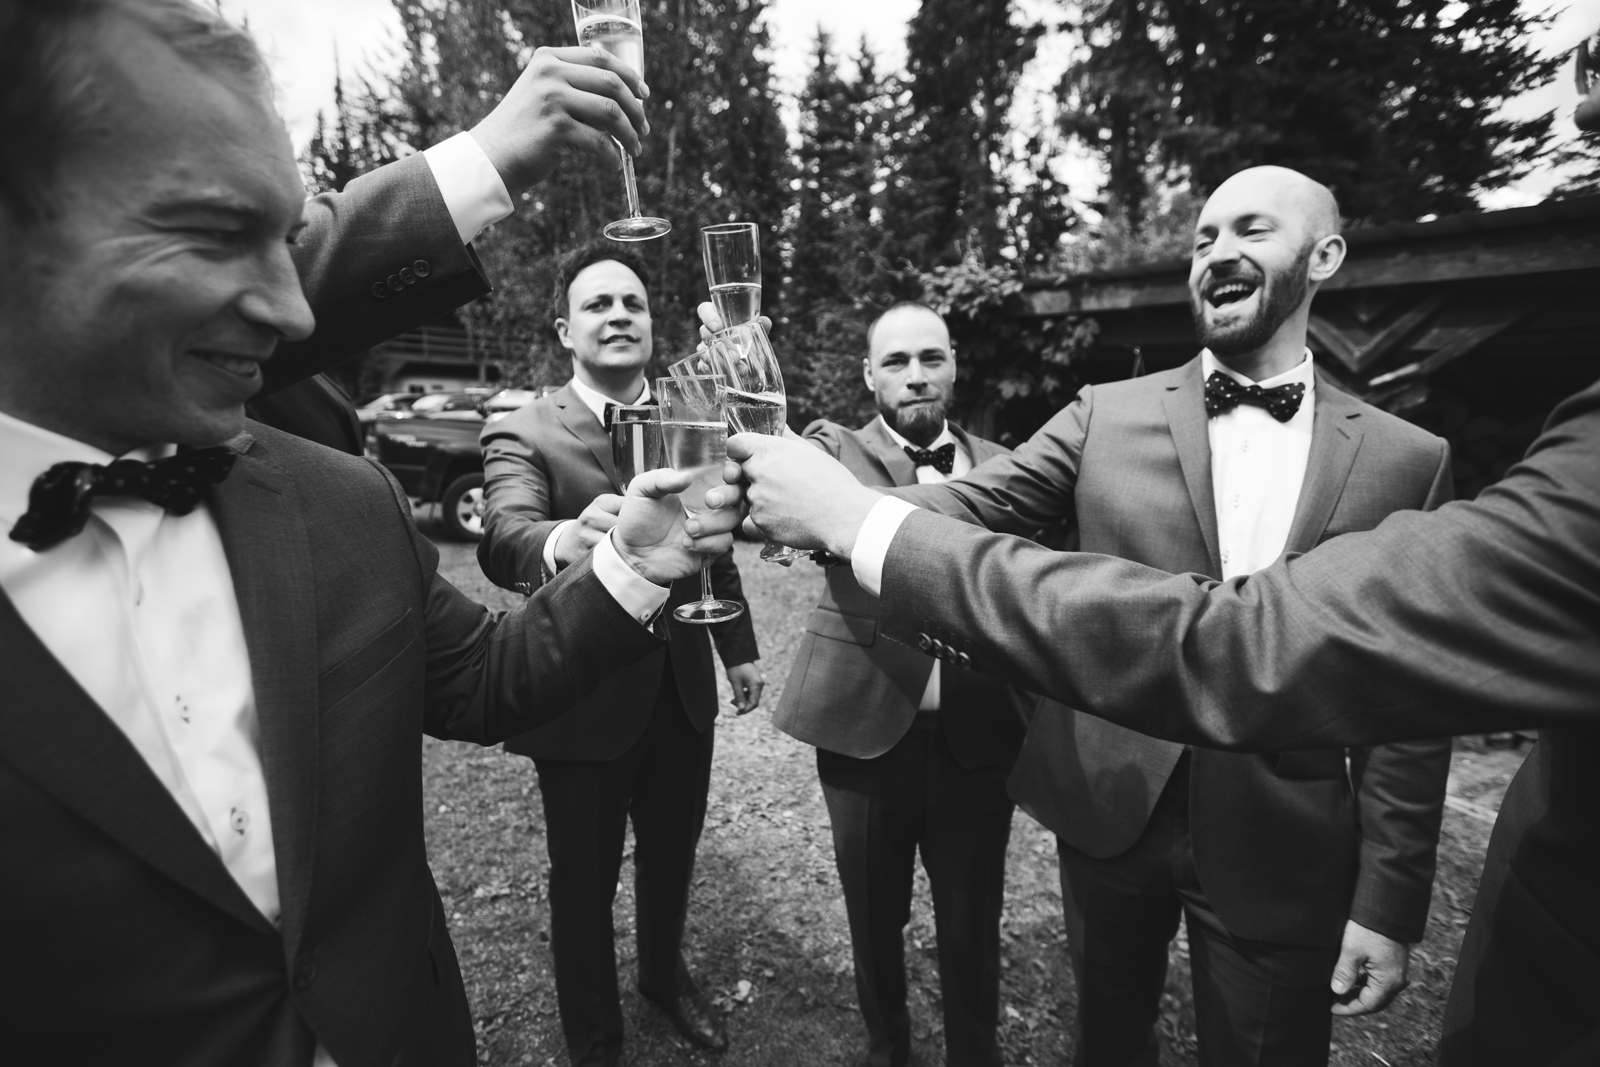 50-Willow_and_Wolf_Photography_Brittany_and_Darren_Golden_Wedding_Blog146Willow_and_Wolf_Photography_Brittany_and_Darren_Golden_Wedding_Ceremony-ATP_2018